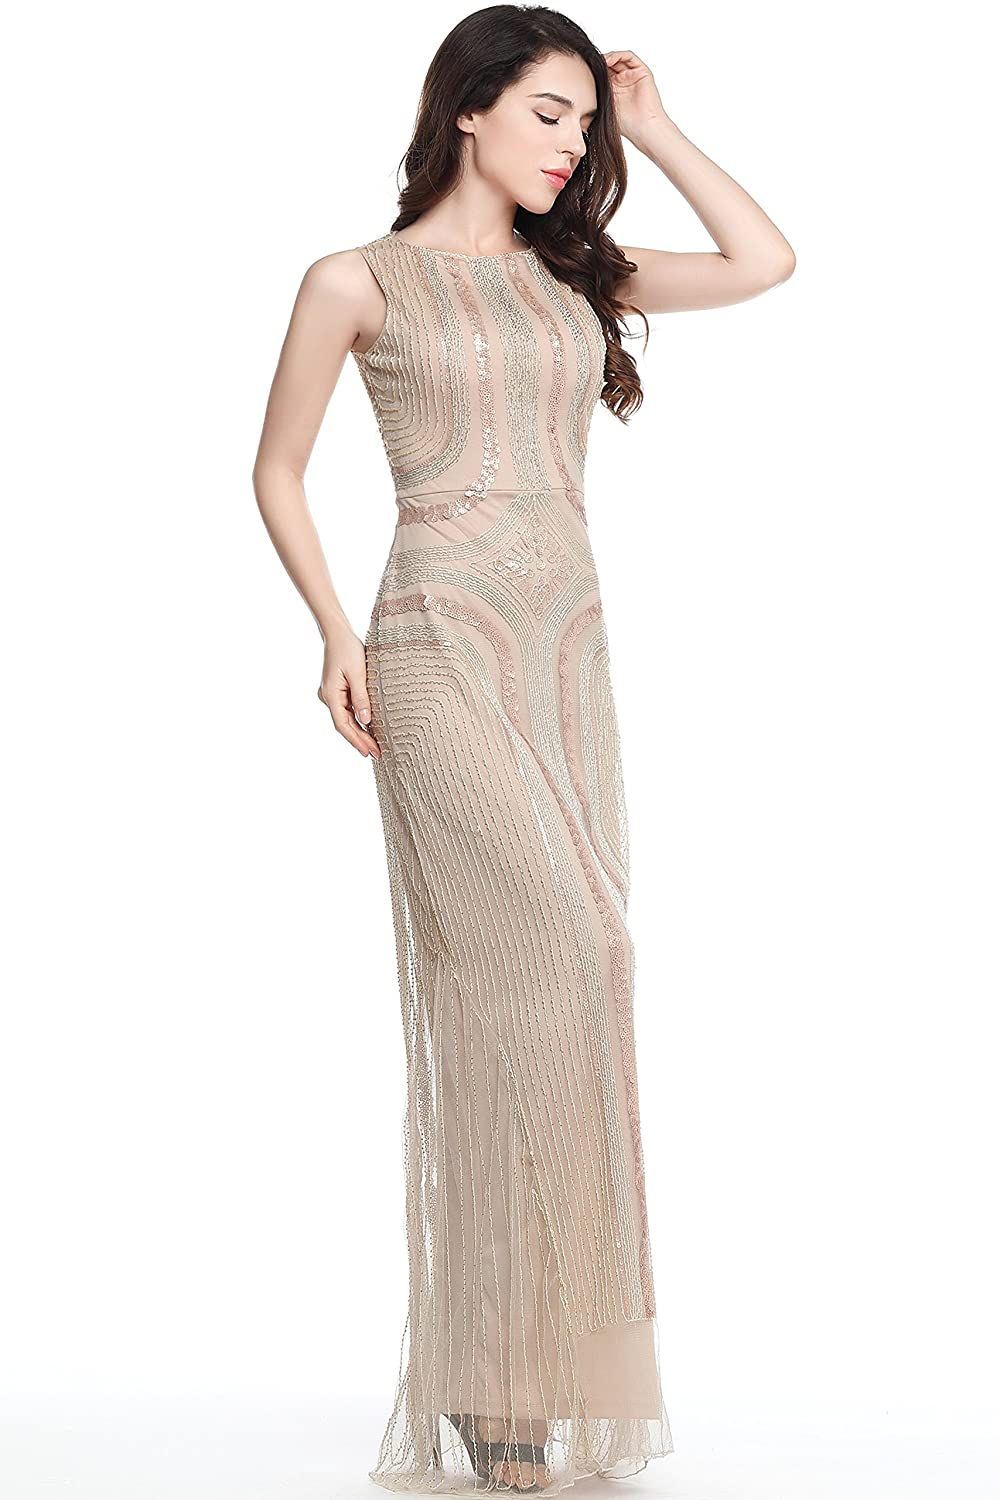 Best 1920s Prom Dresses – Great Gatsby Style Gowns BABEYOND 1920s Flapper Fancy Dress Roaring 20s Gatsby Dress Costume Vintage Sequin Beaded Long Evening Dress $39.99 AT vintagedancer.com